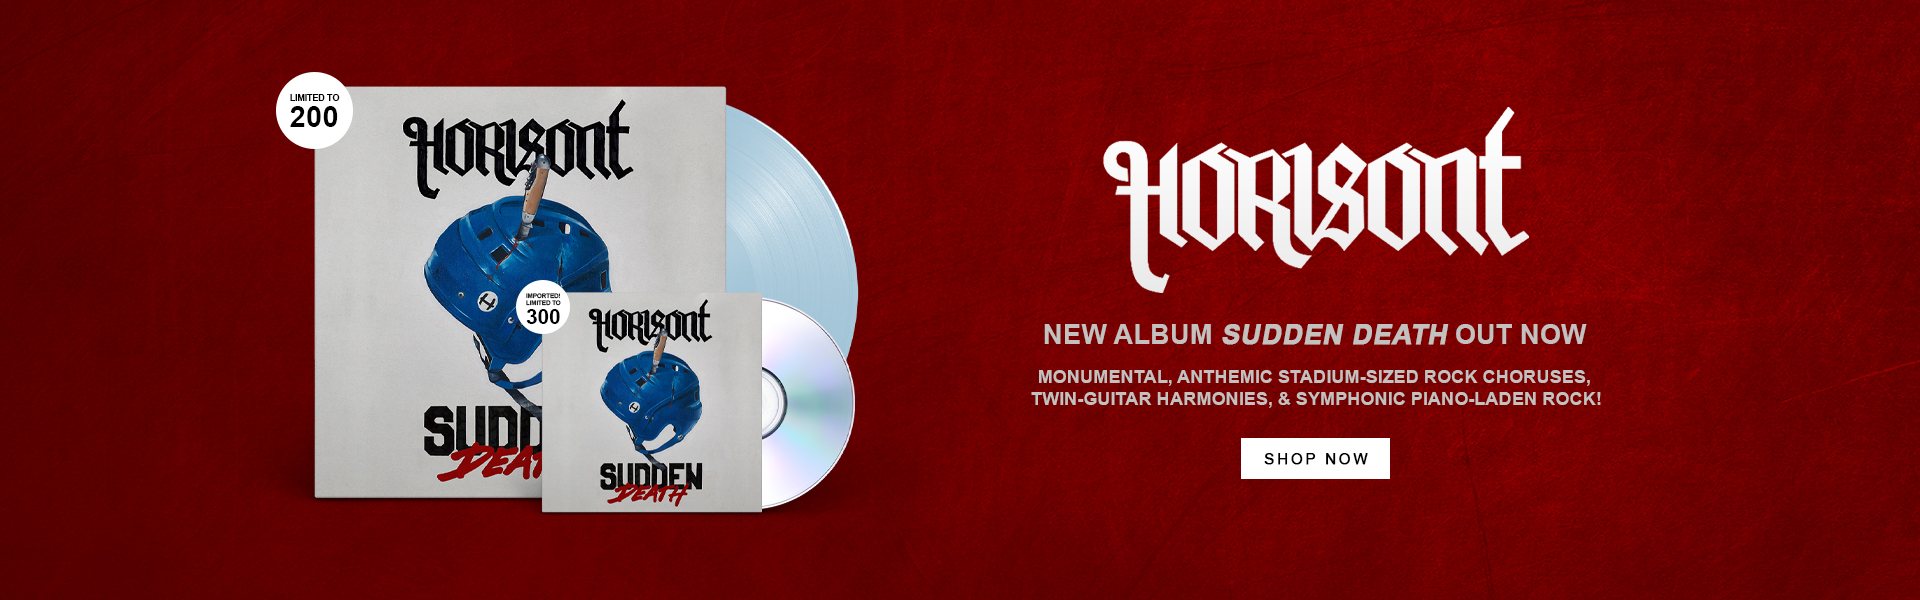 Horisont | New album Sudden Death out now. | Monumental, anthemic stadium-sized rock choruses, twin-guitar harmonies, and symphonic piano-laden rock! | Shop Now.